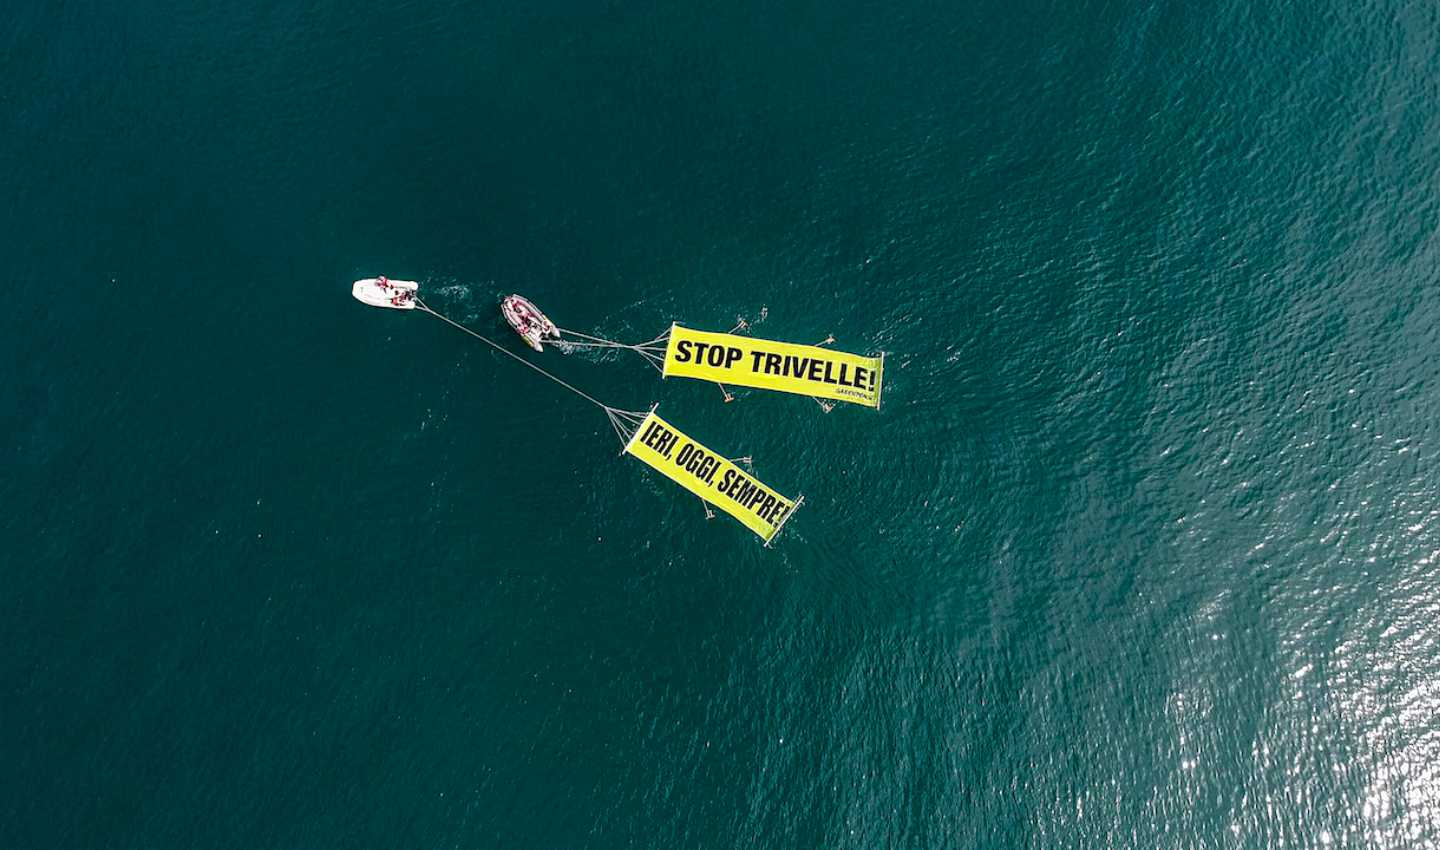 Campagna No Trivelle Greenpeace